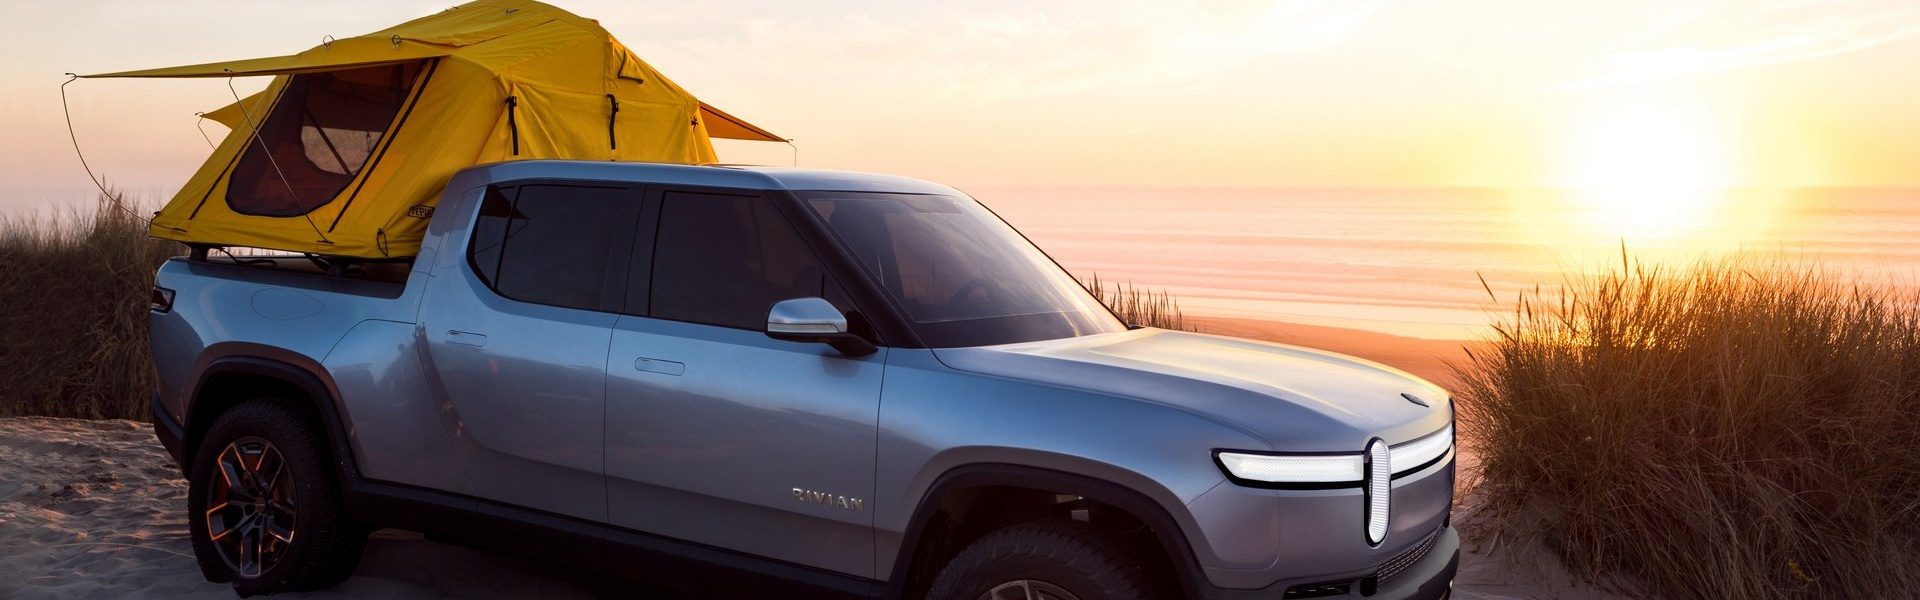 rivian-unveils-r1t-electric-truck-3.jpg